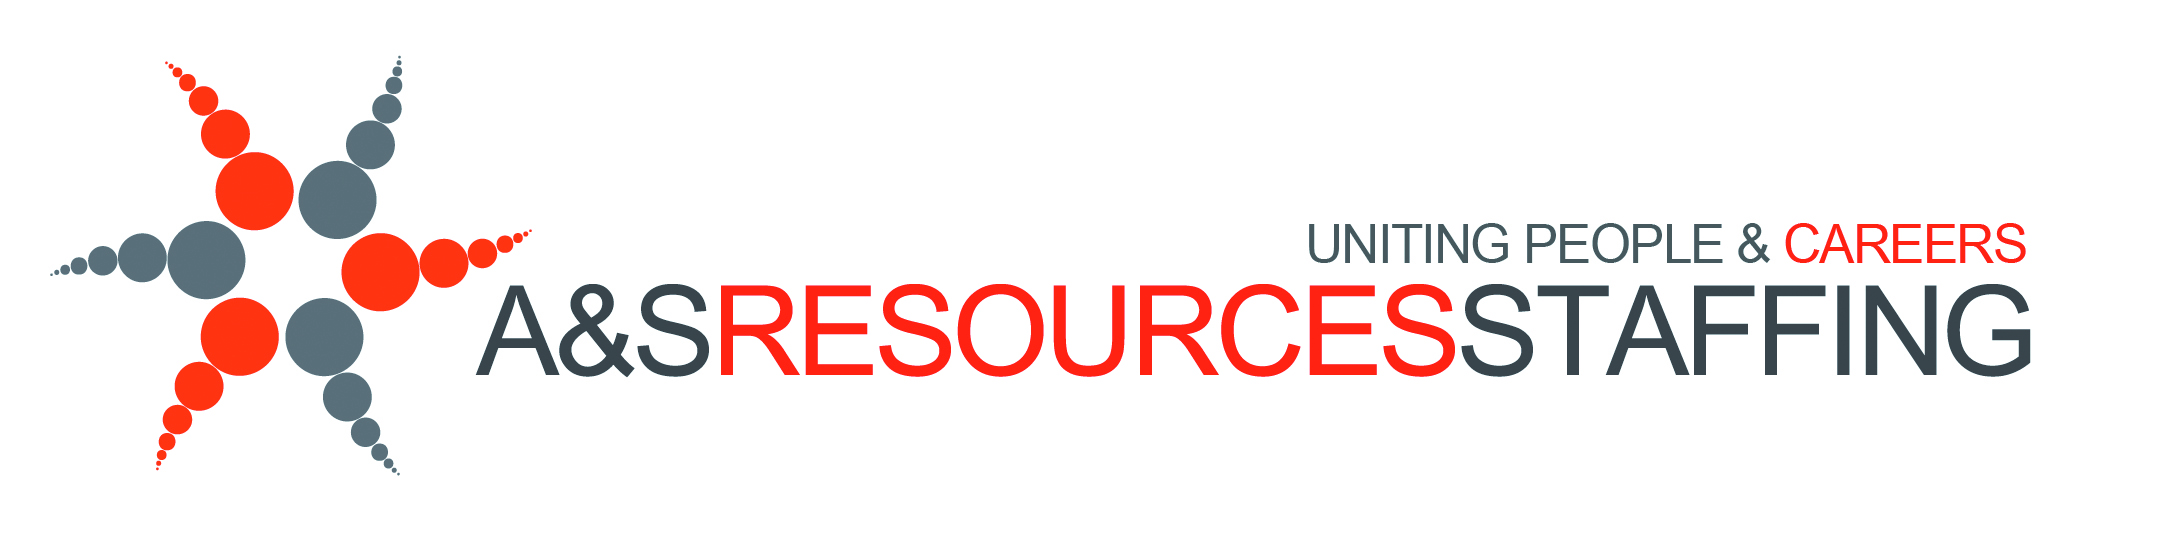 A&S Resources Staffing Inc,